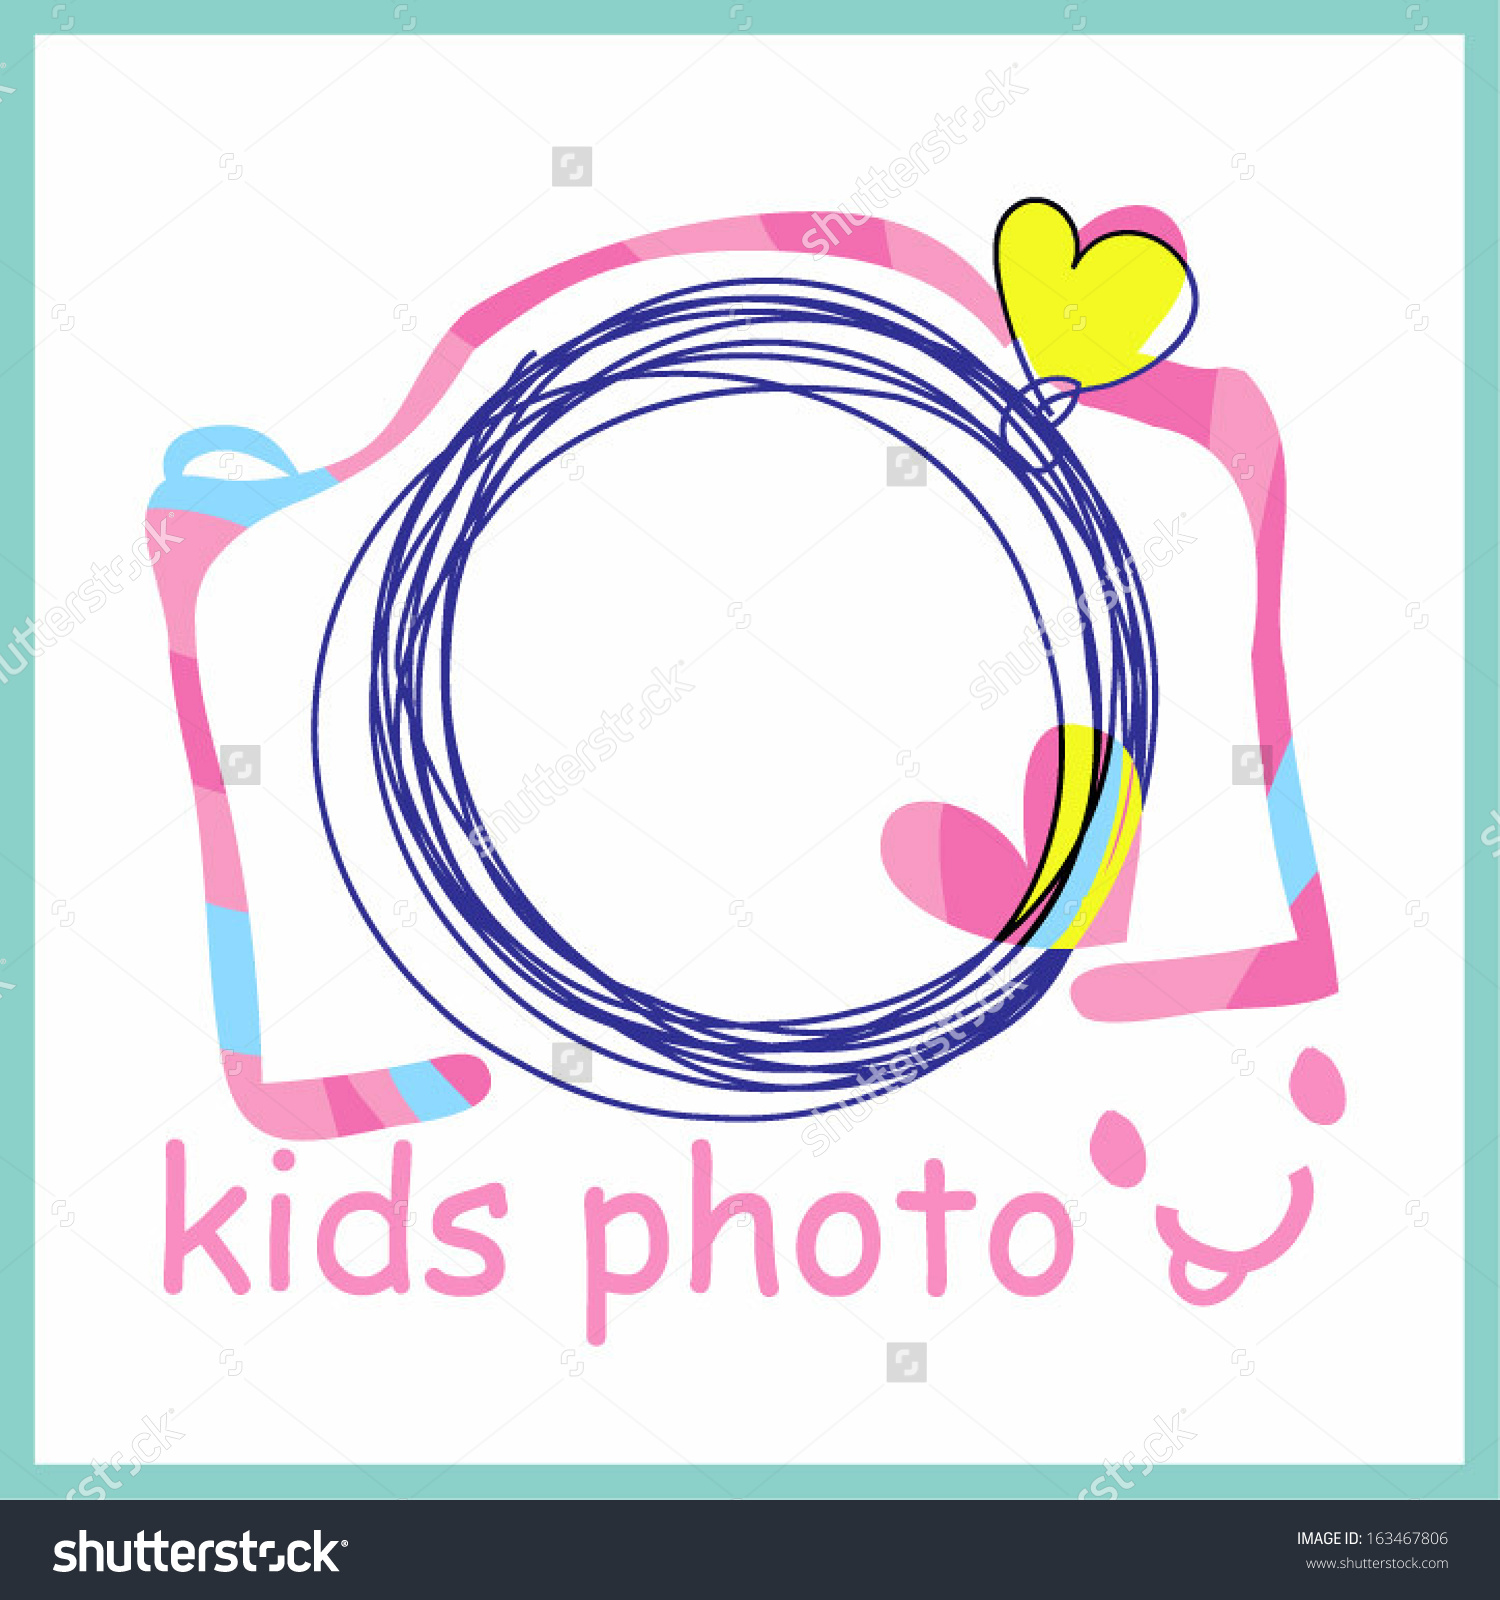 Colourful Pink Camera Clipart Kids Photo Stock Vector 163467806.